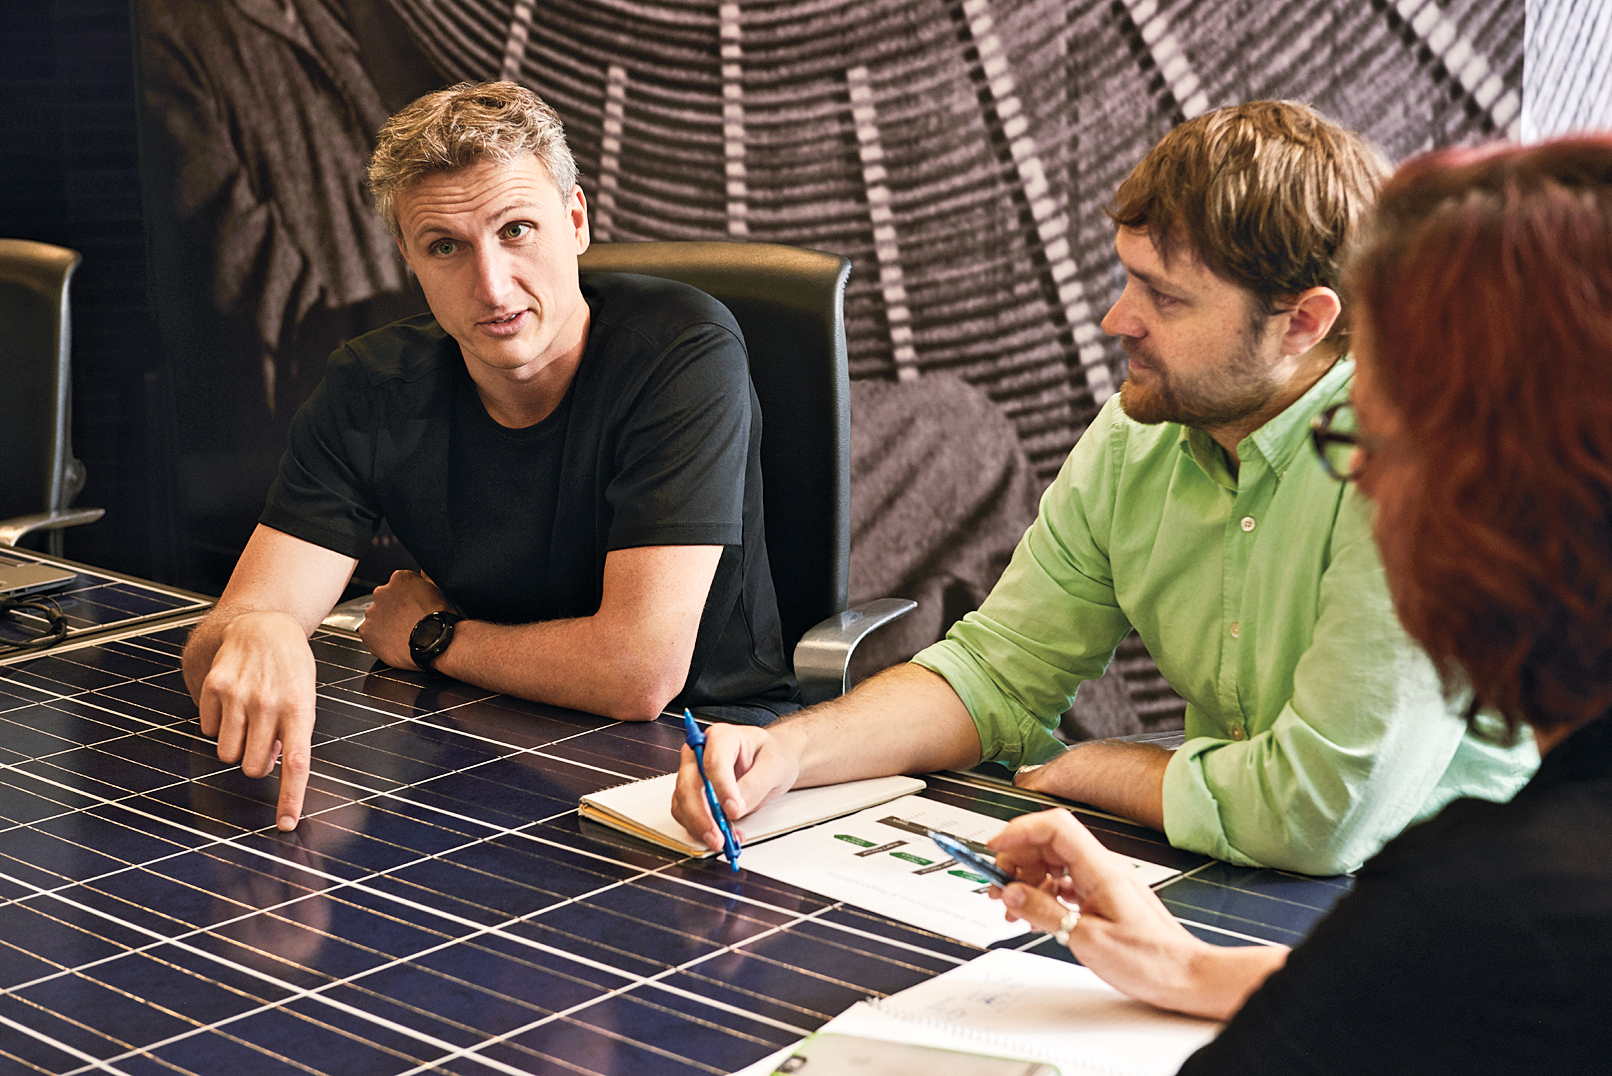 Elon Musk, Lyndon Rive, and the Plan to Put Solar Panels on Every